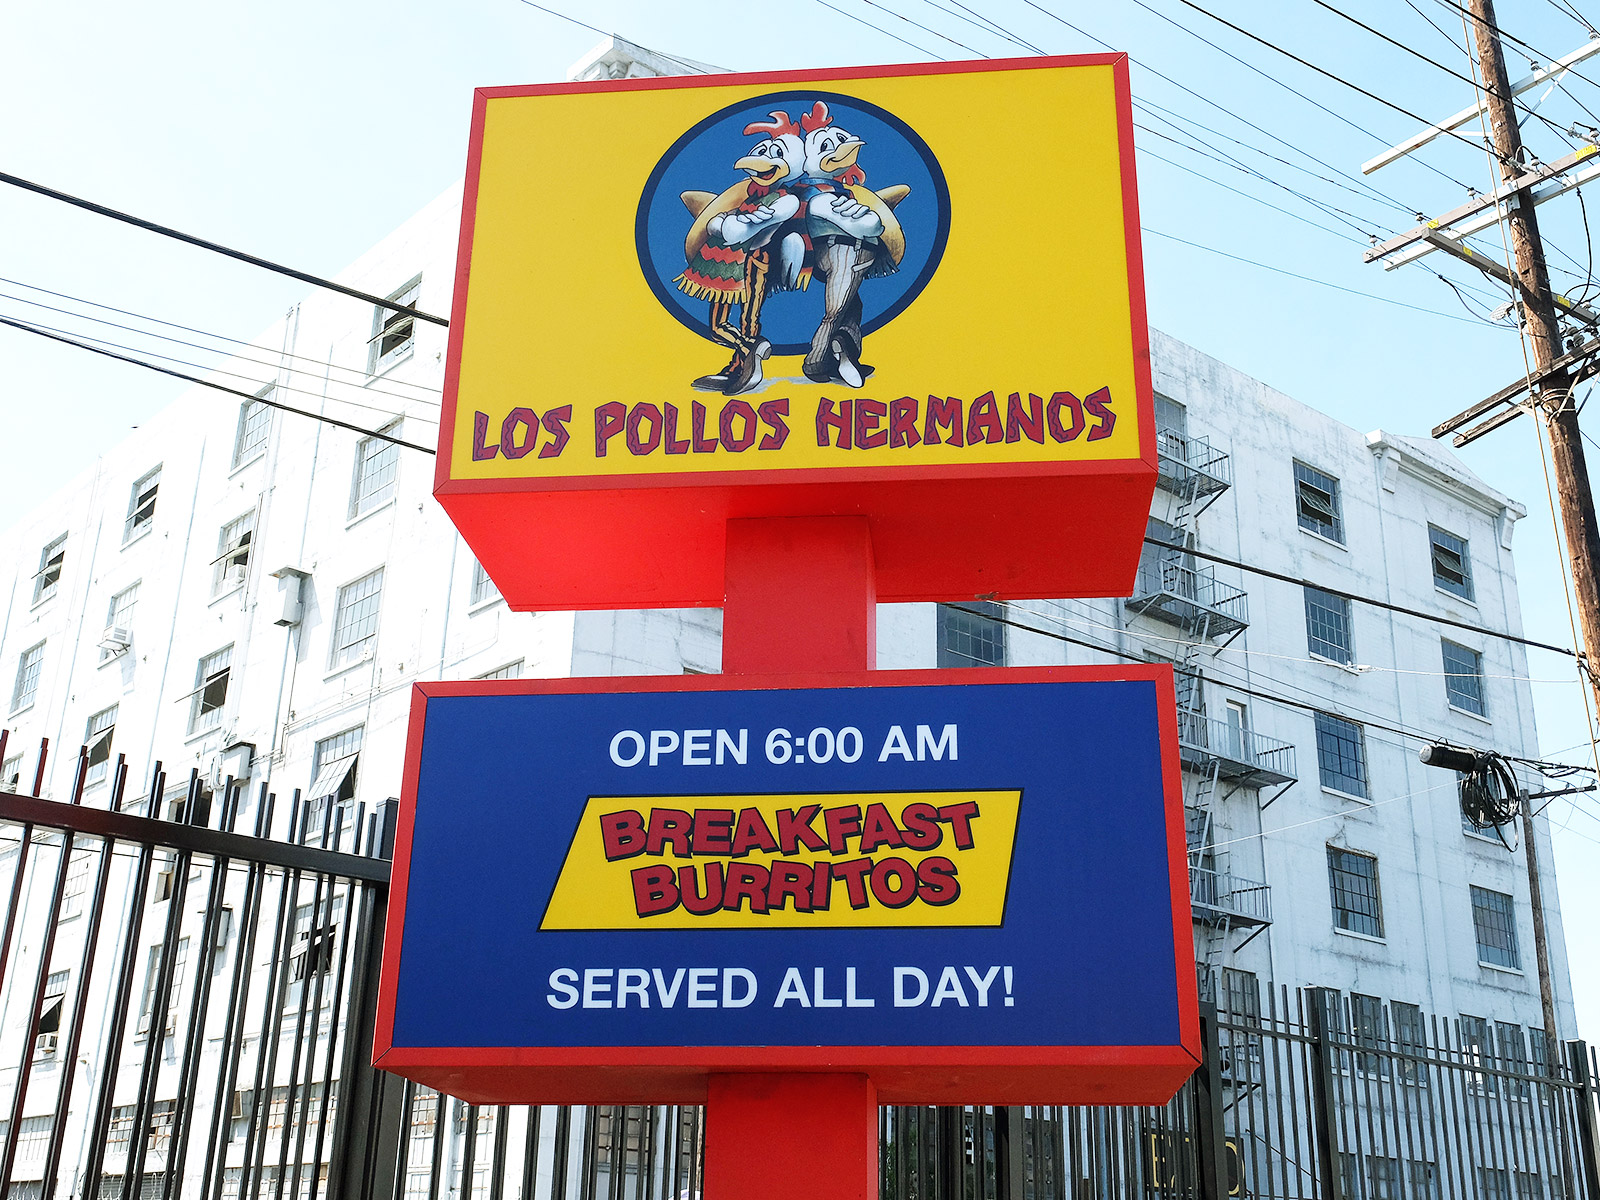 los pollos hermanos is back